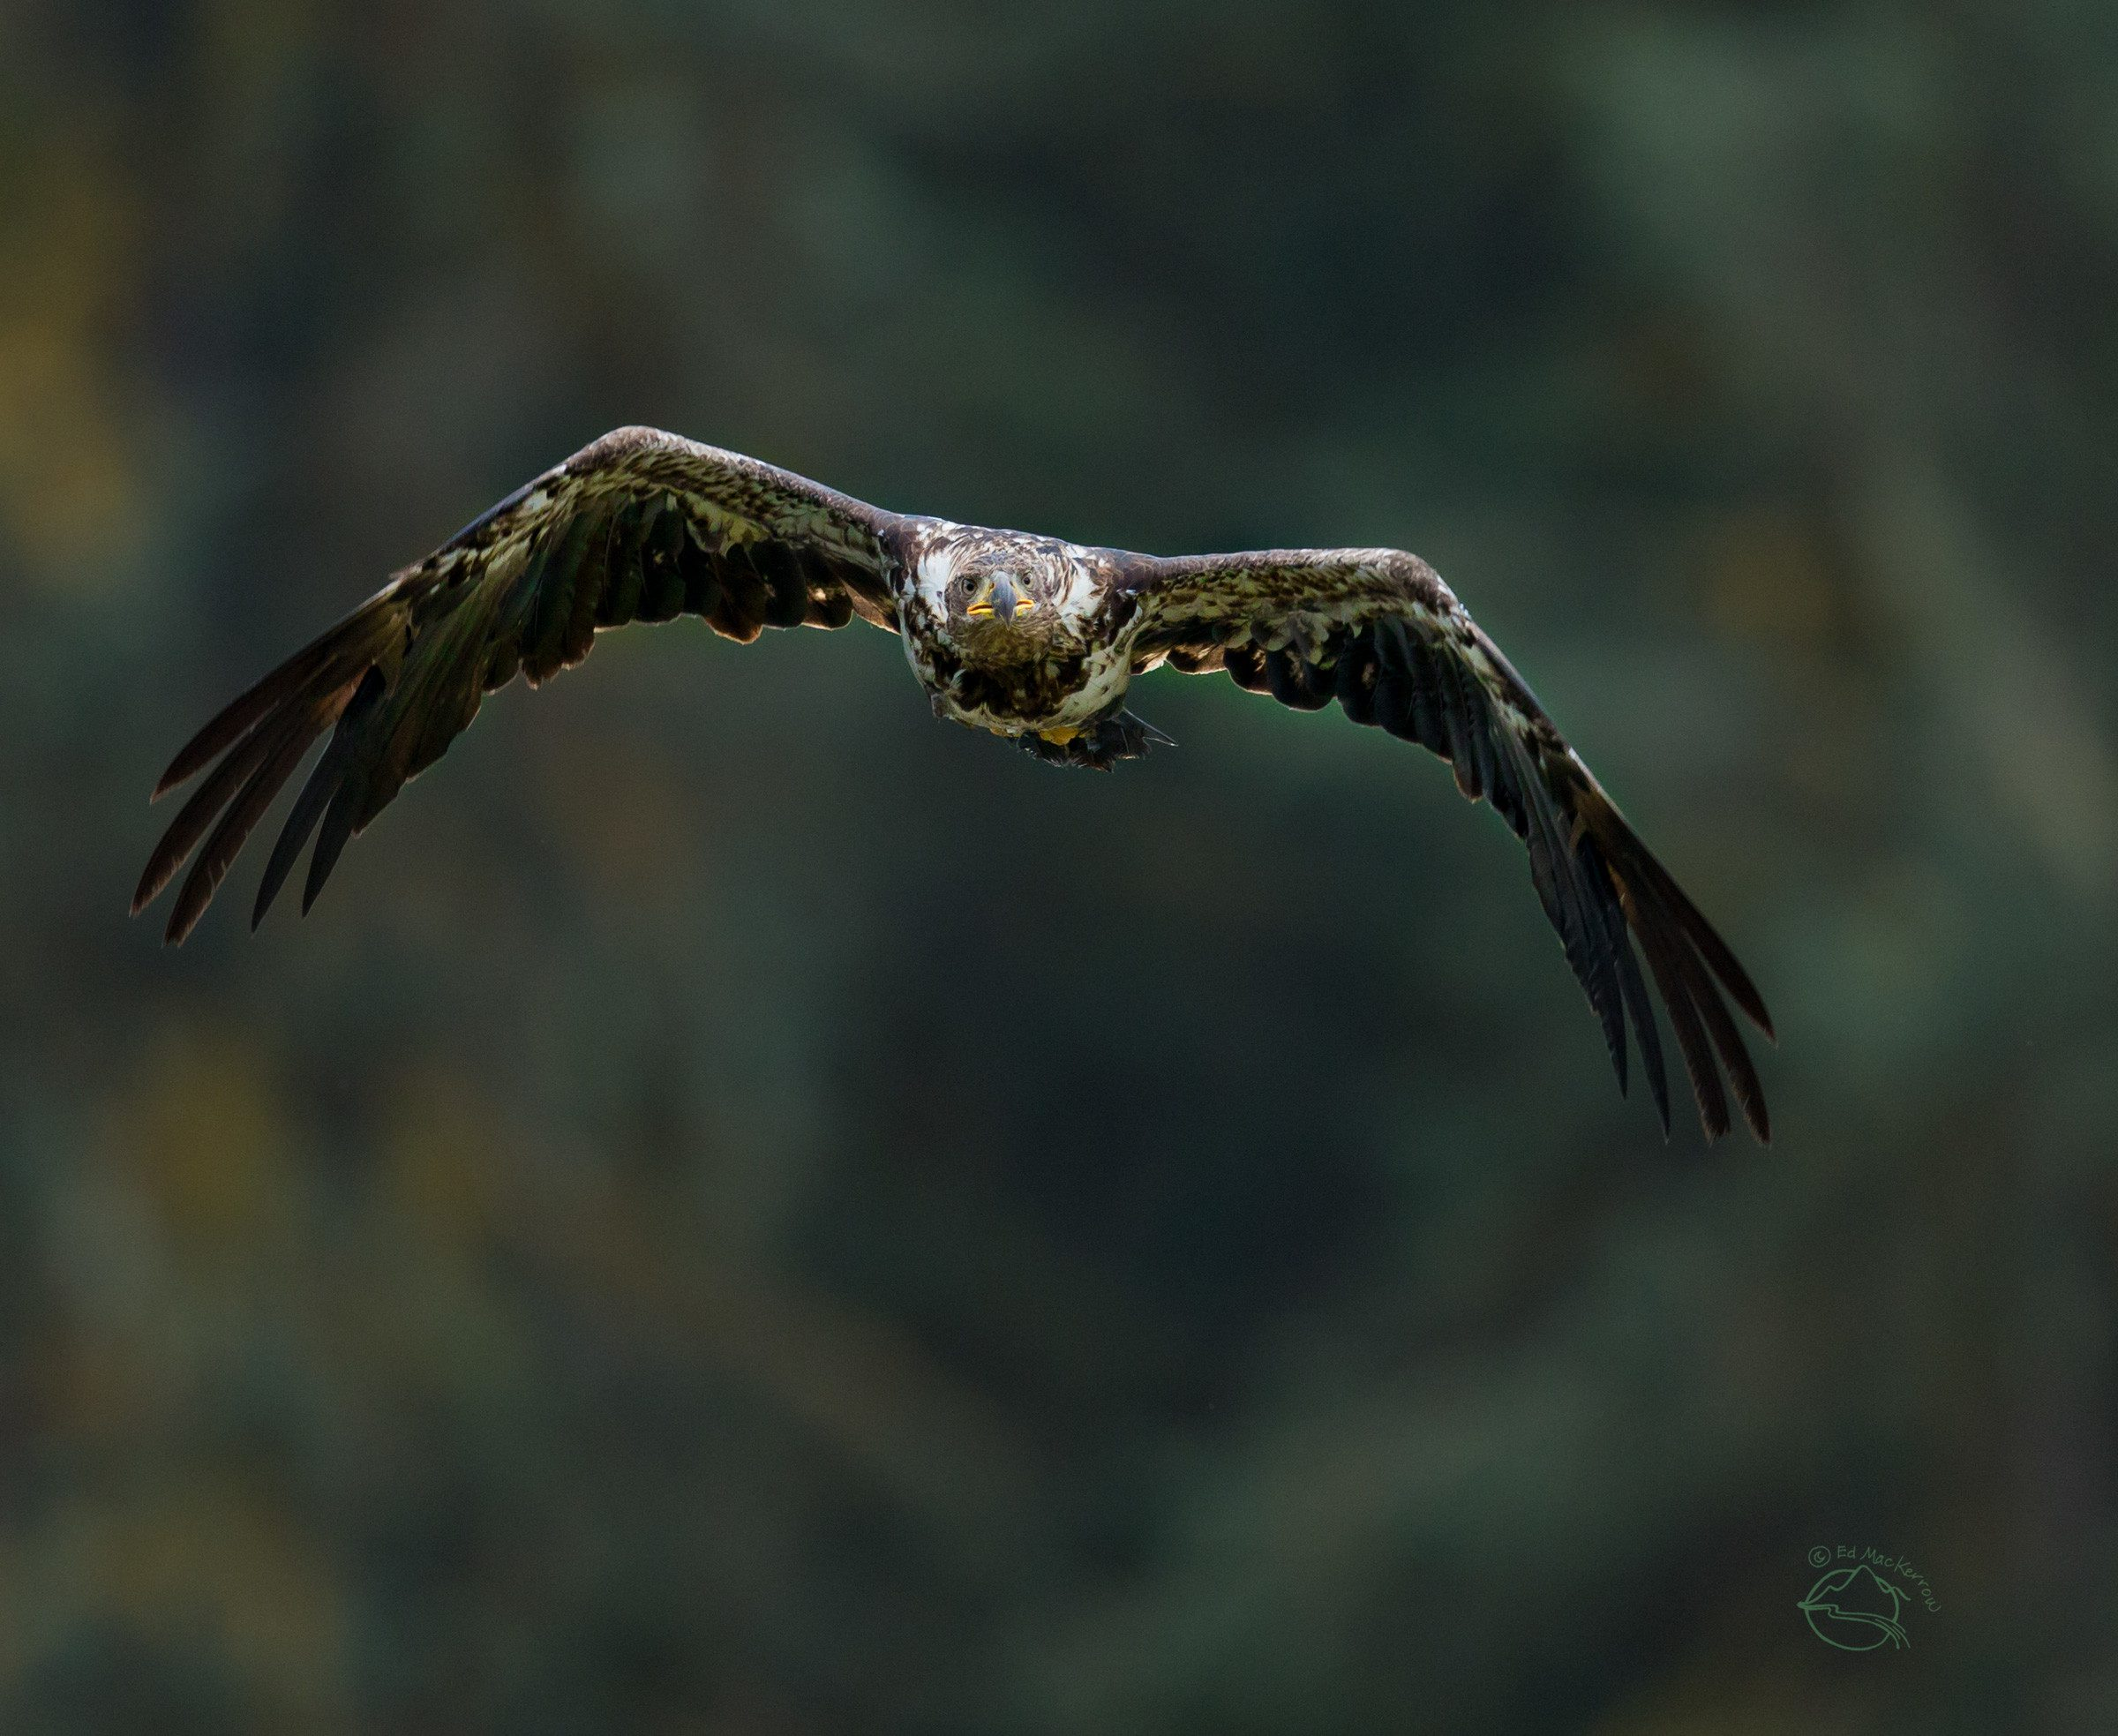 A young bald eagle in flight in the rainforest.